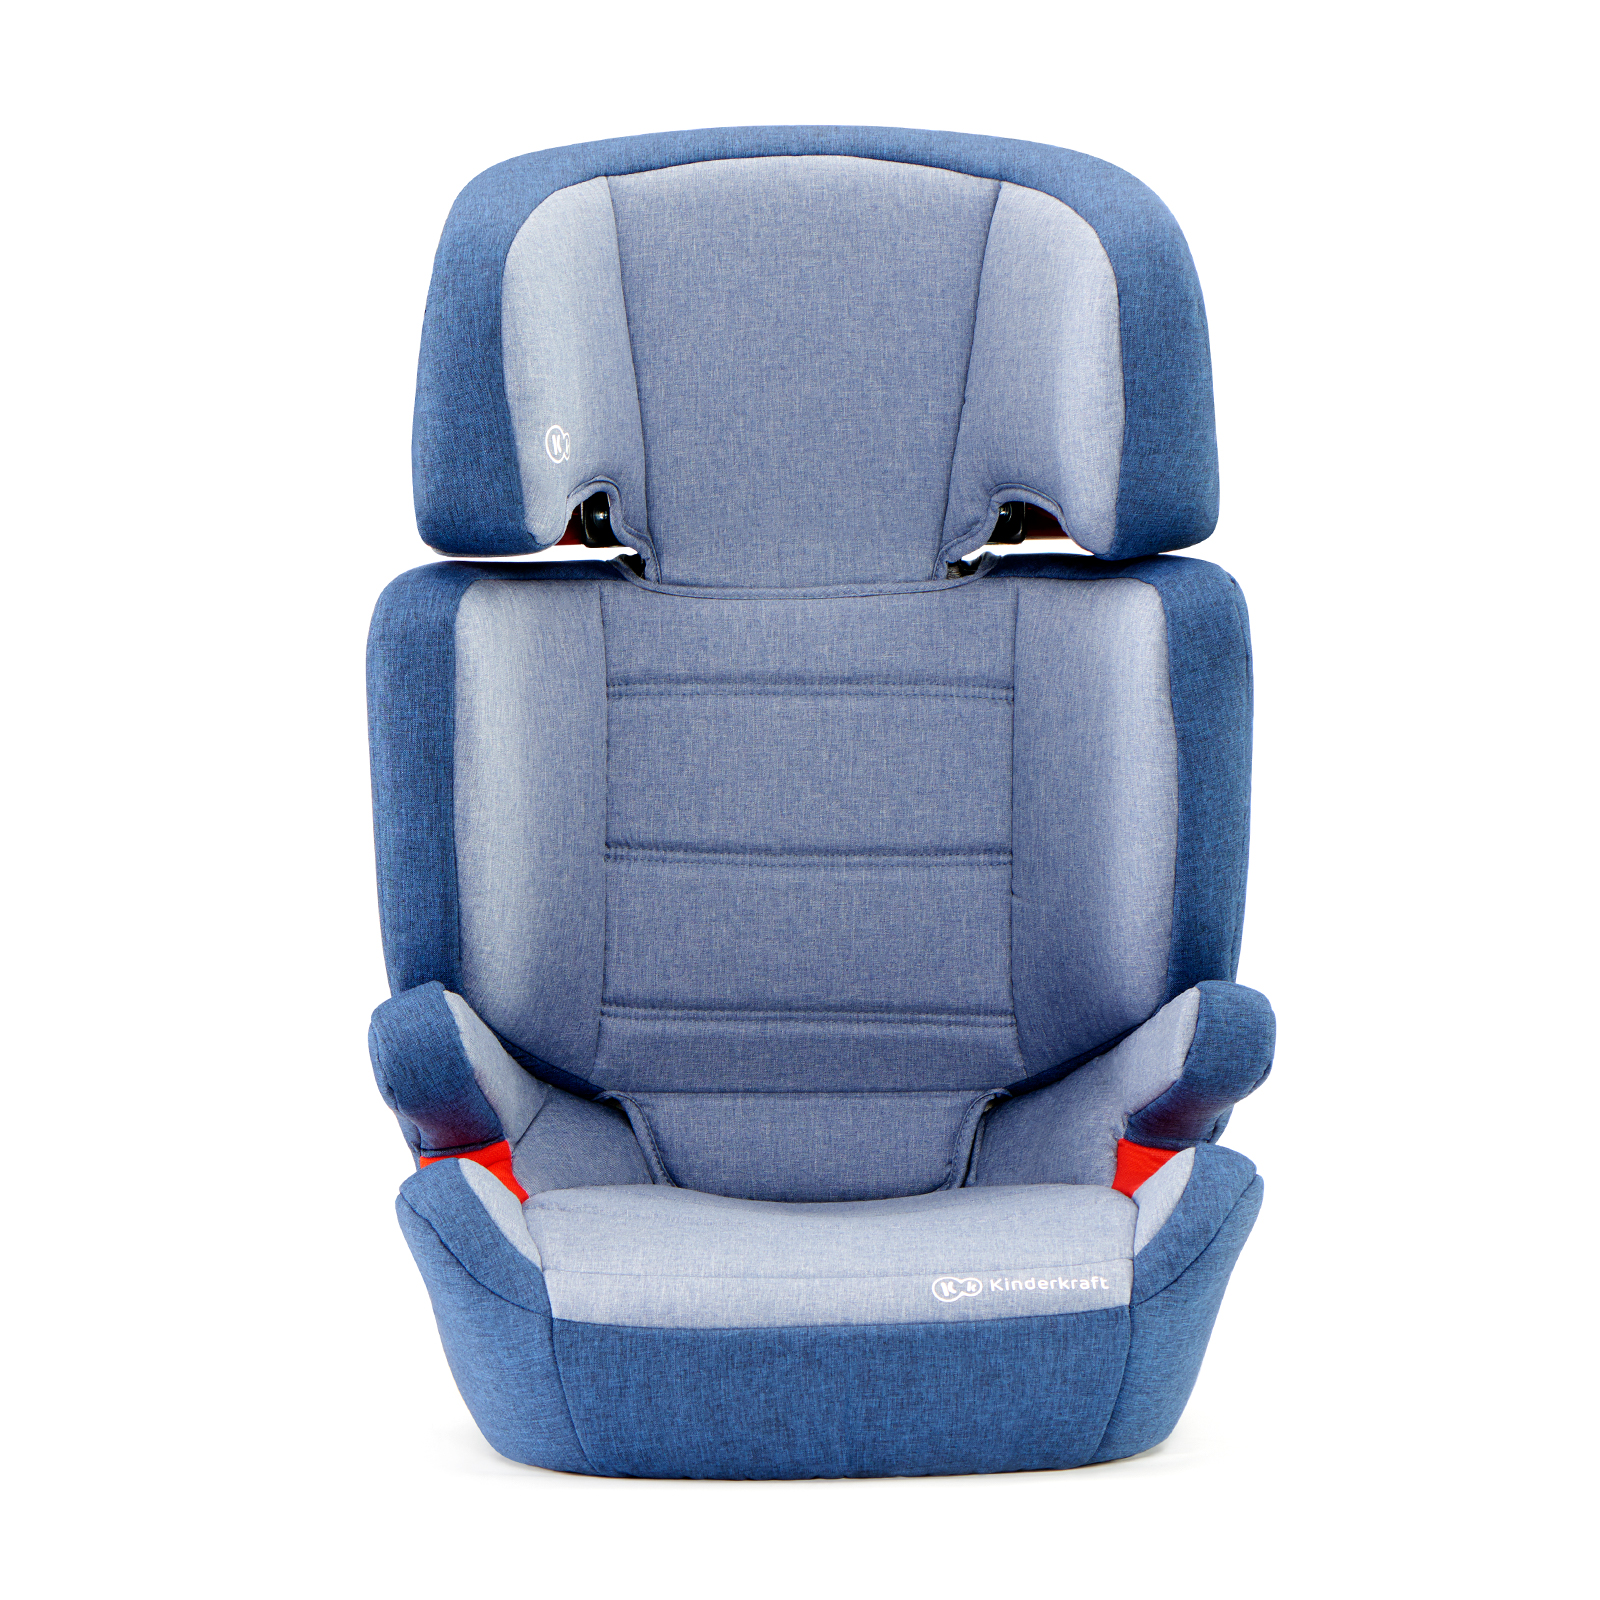 Car seat Junior Fix KKFJUFIBLGR000  KKFJUFIBLK0000 KKFJUFINAV0000